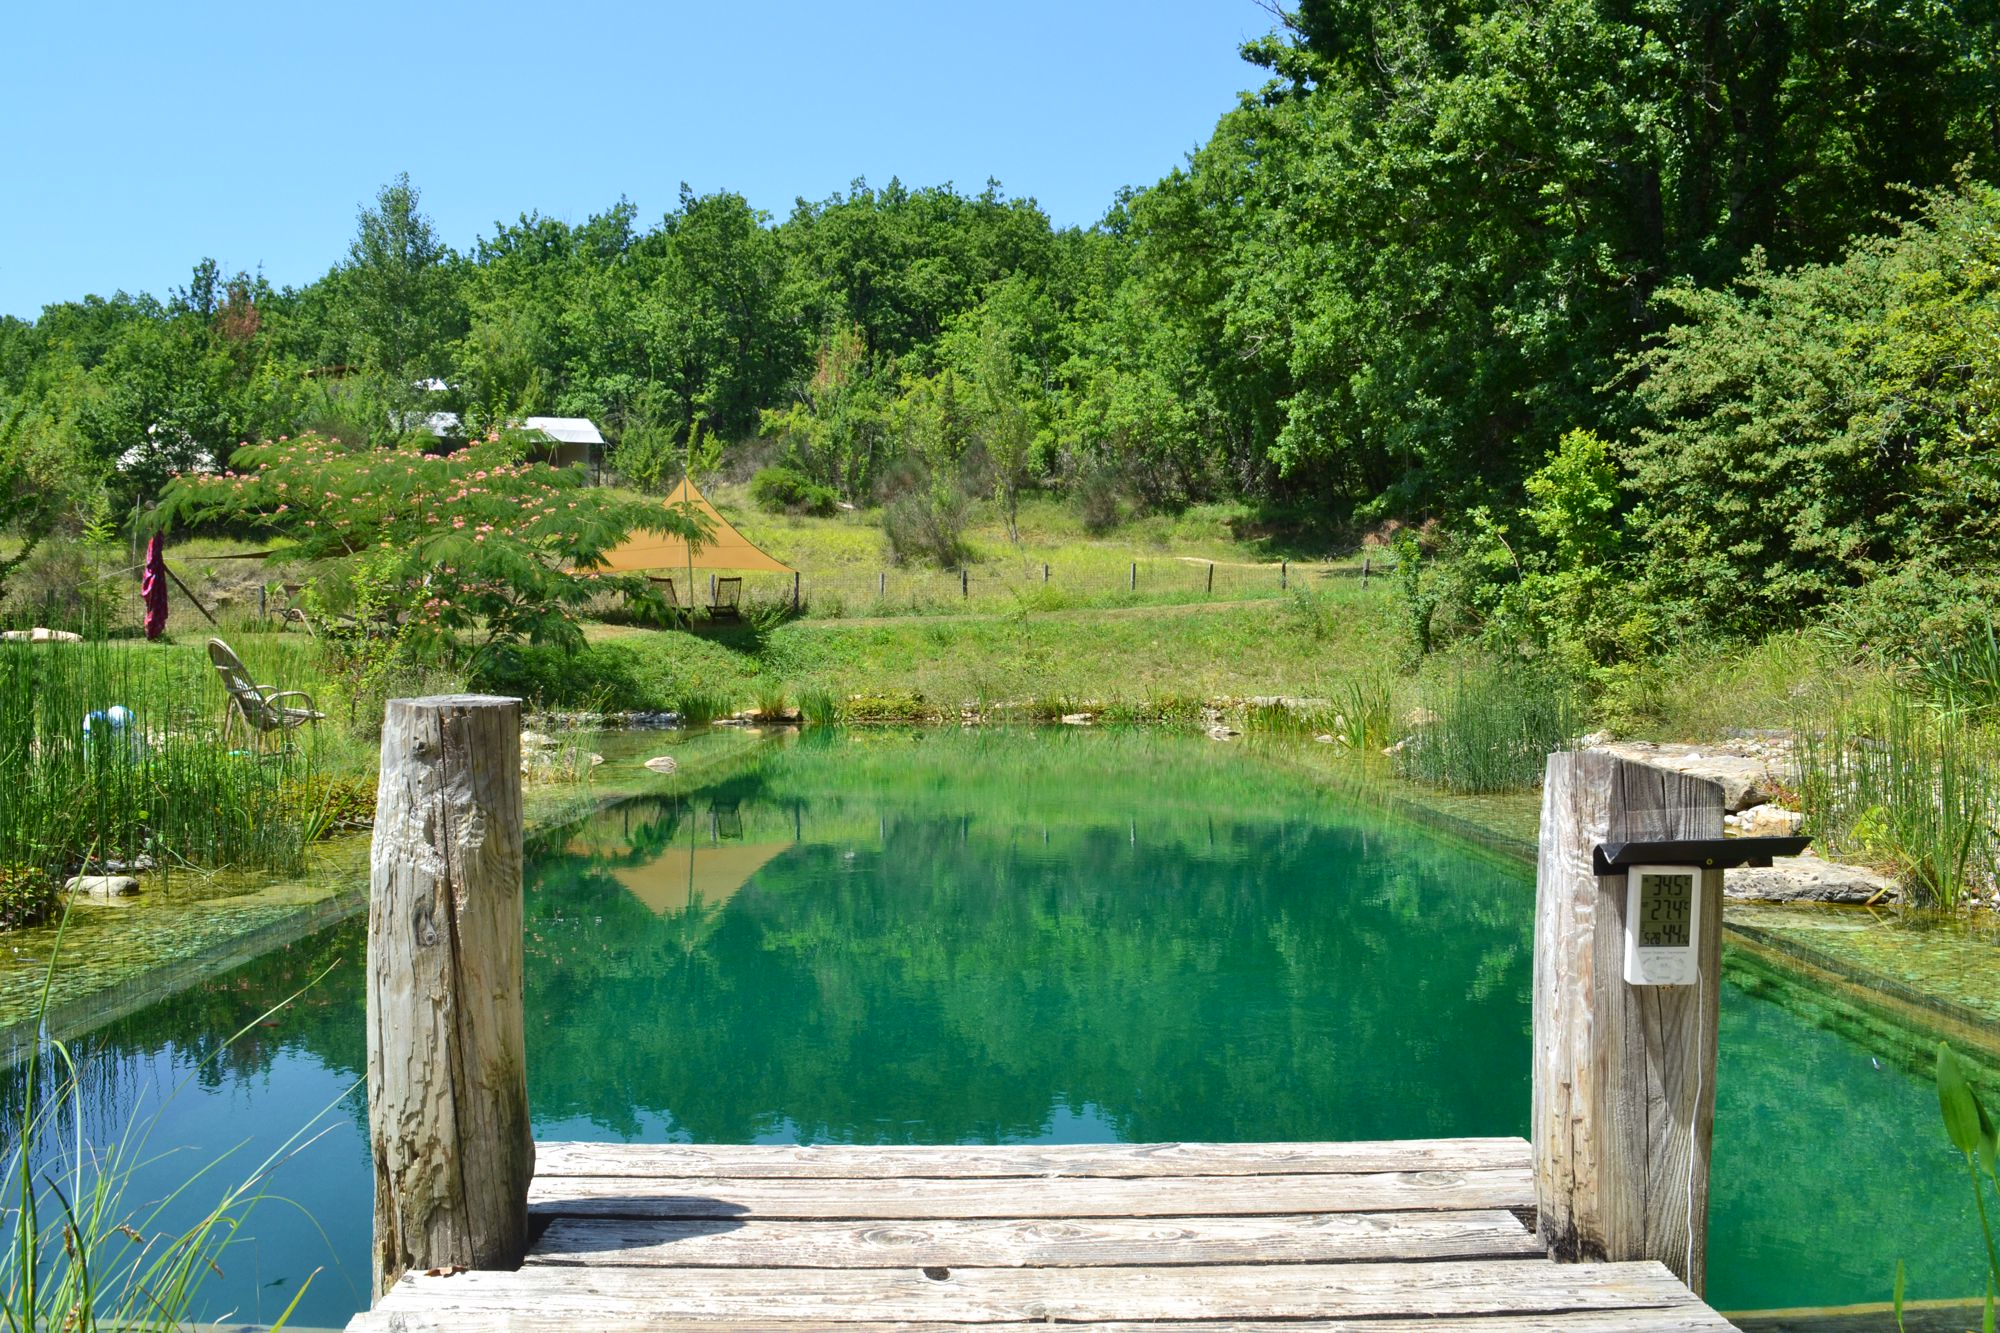 Dive into our natural swimming pool. 20m long and a haven for local wildlife.